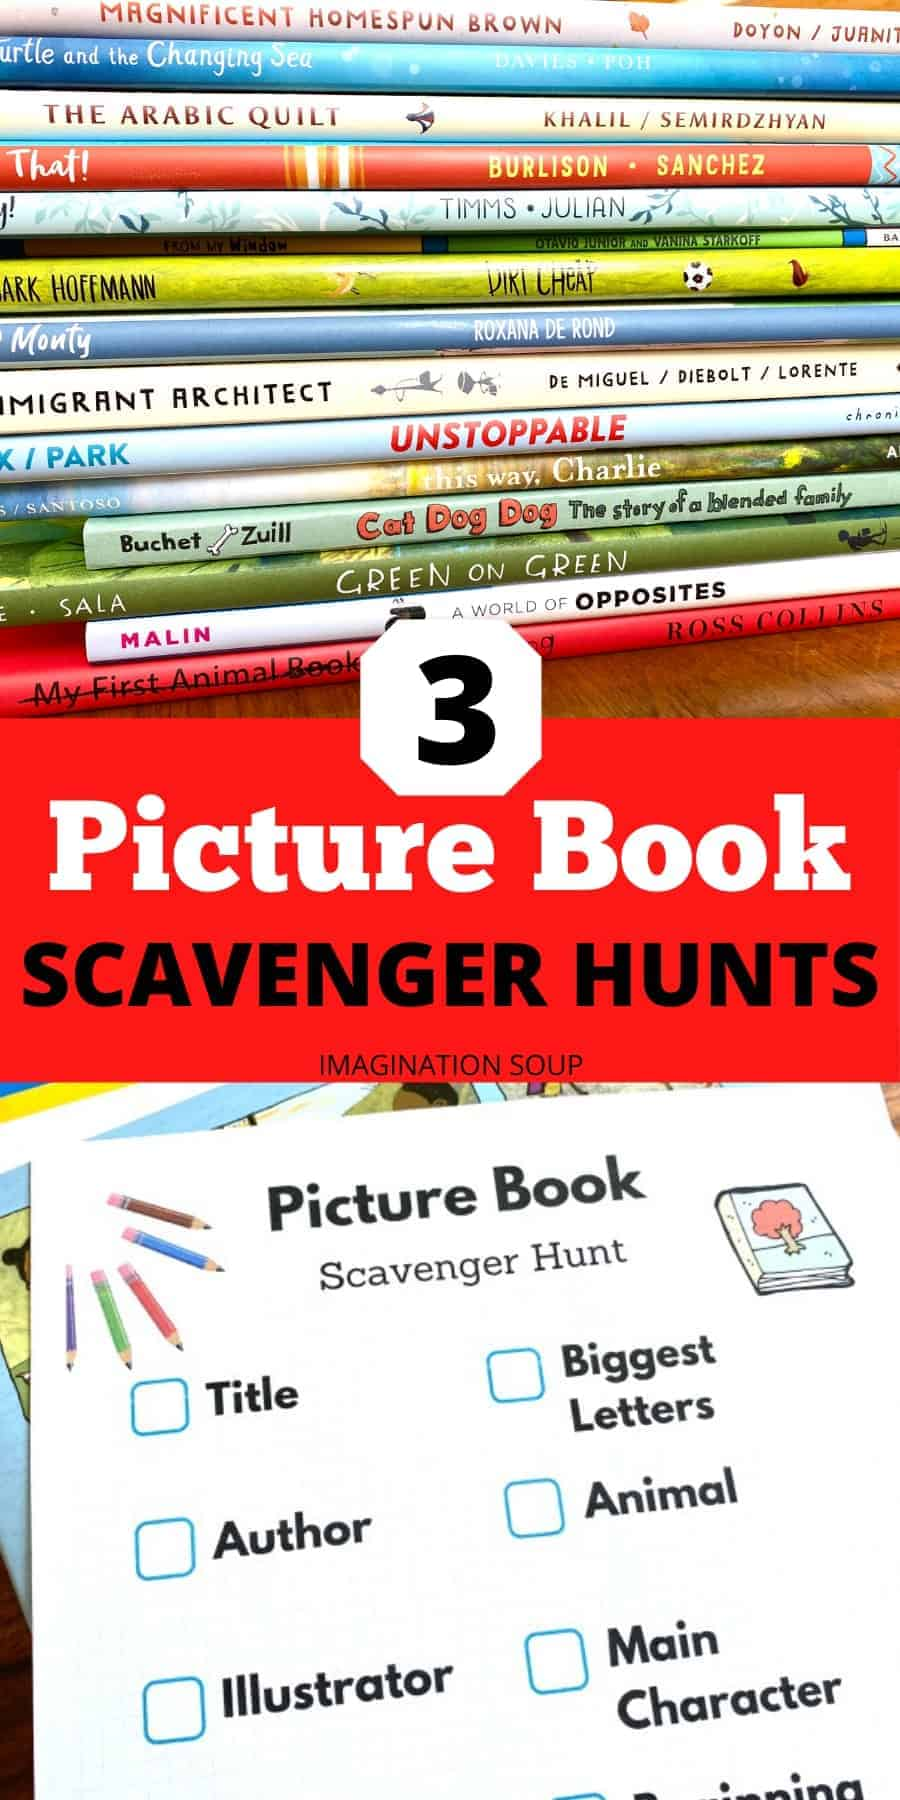 3 picture book scavenger hunts for kids (fun at home literacy activity)